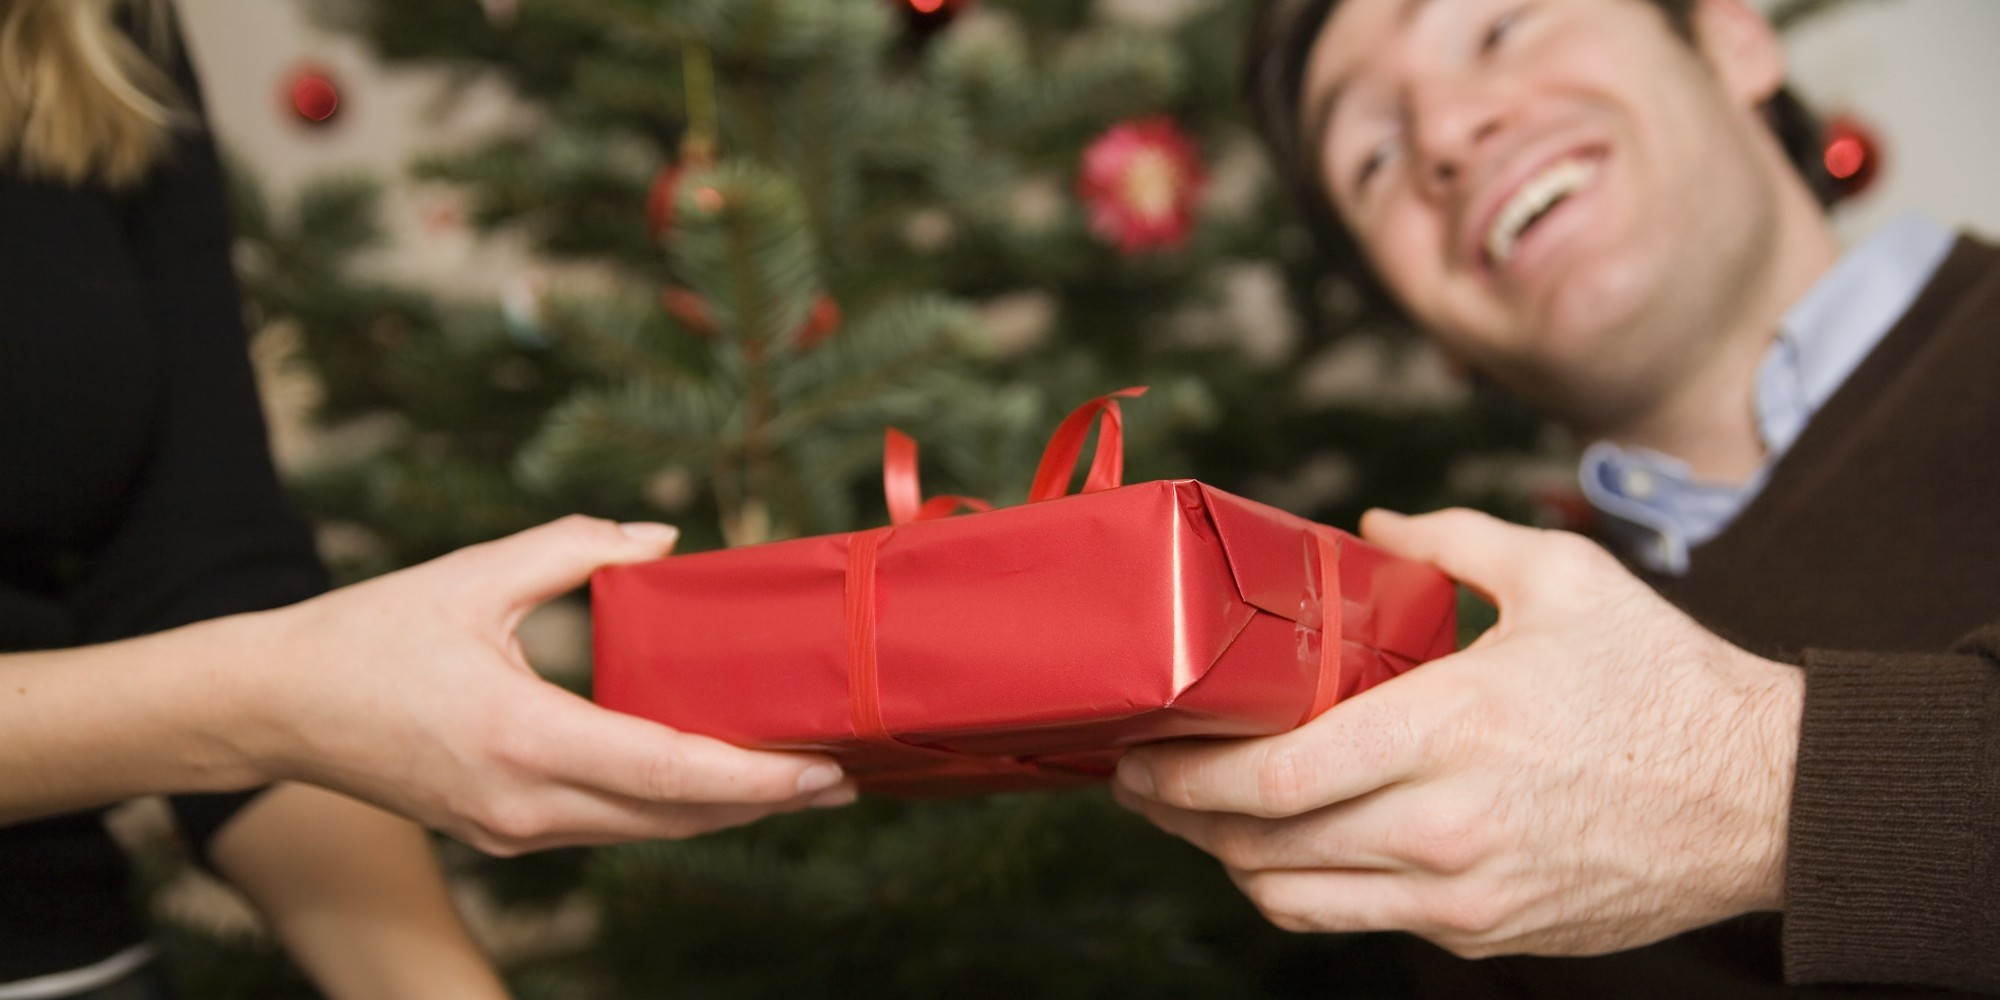 12 Men Of Christmas.15 Gifts Men Actually Want To Receive For Christmas Wooder Ice